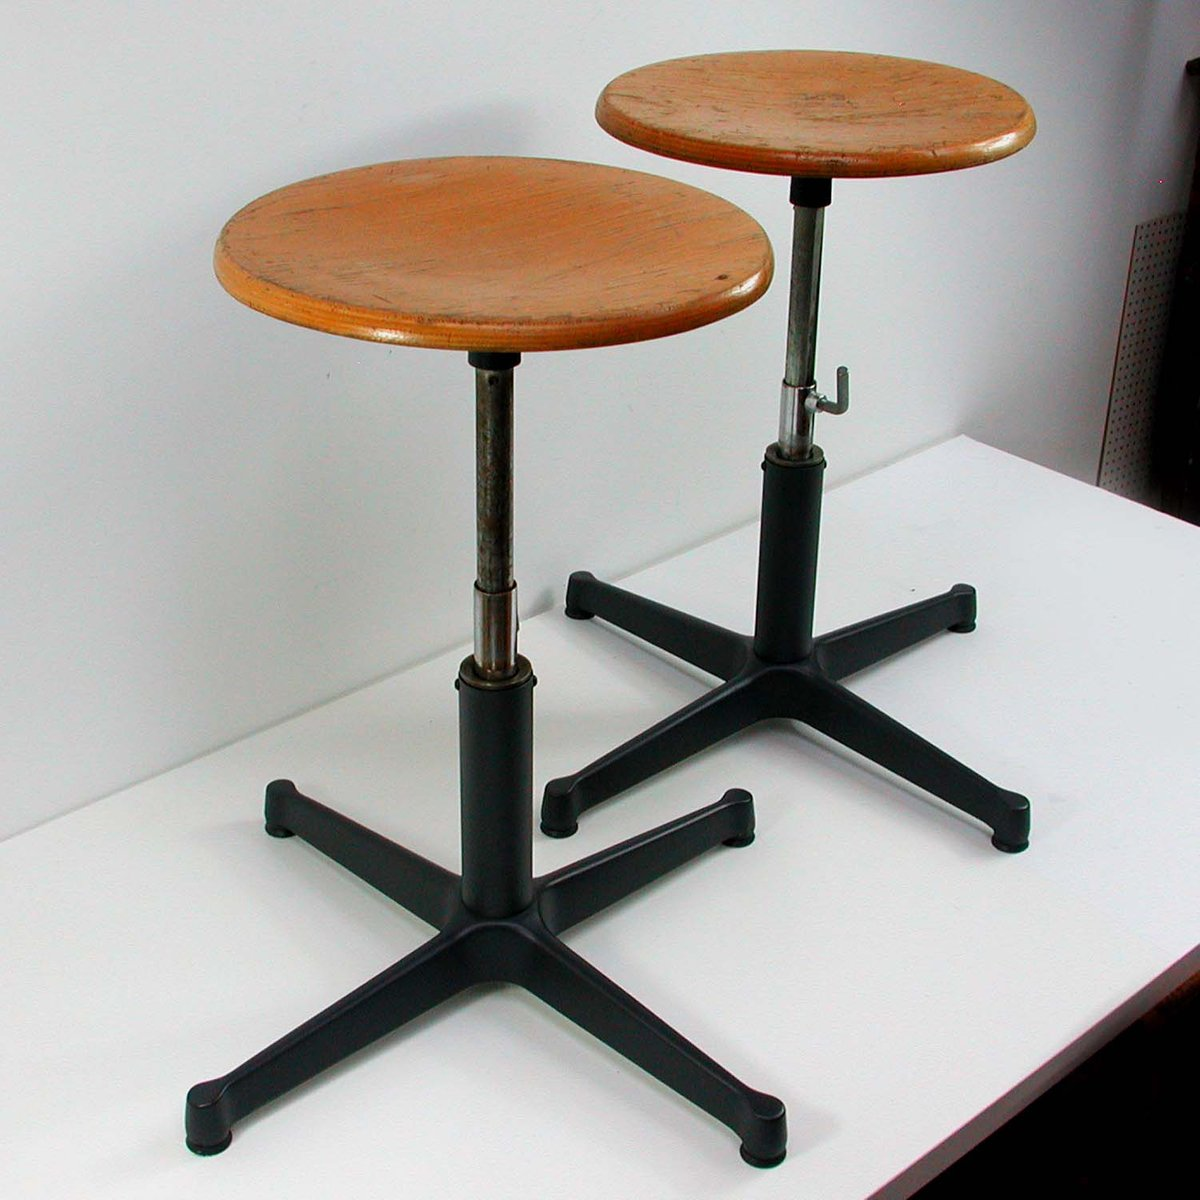 Vintage Industrial Work Stool 1960s : industrial work stool - islam-shia.org